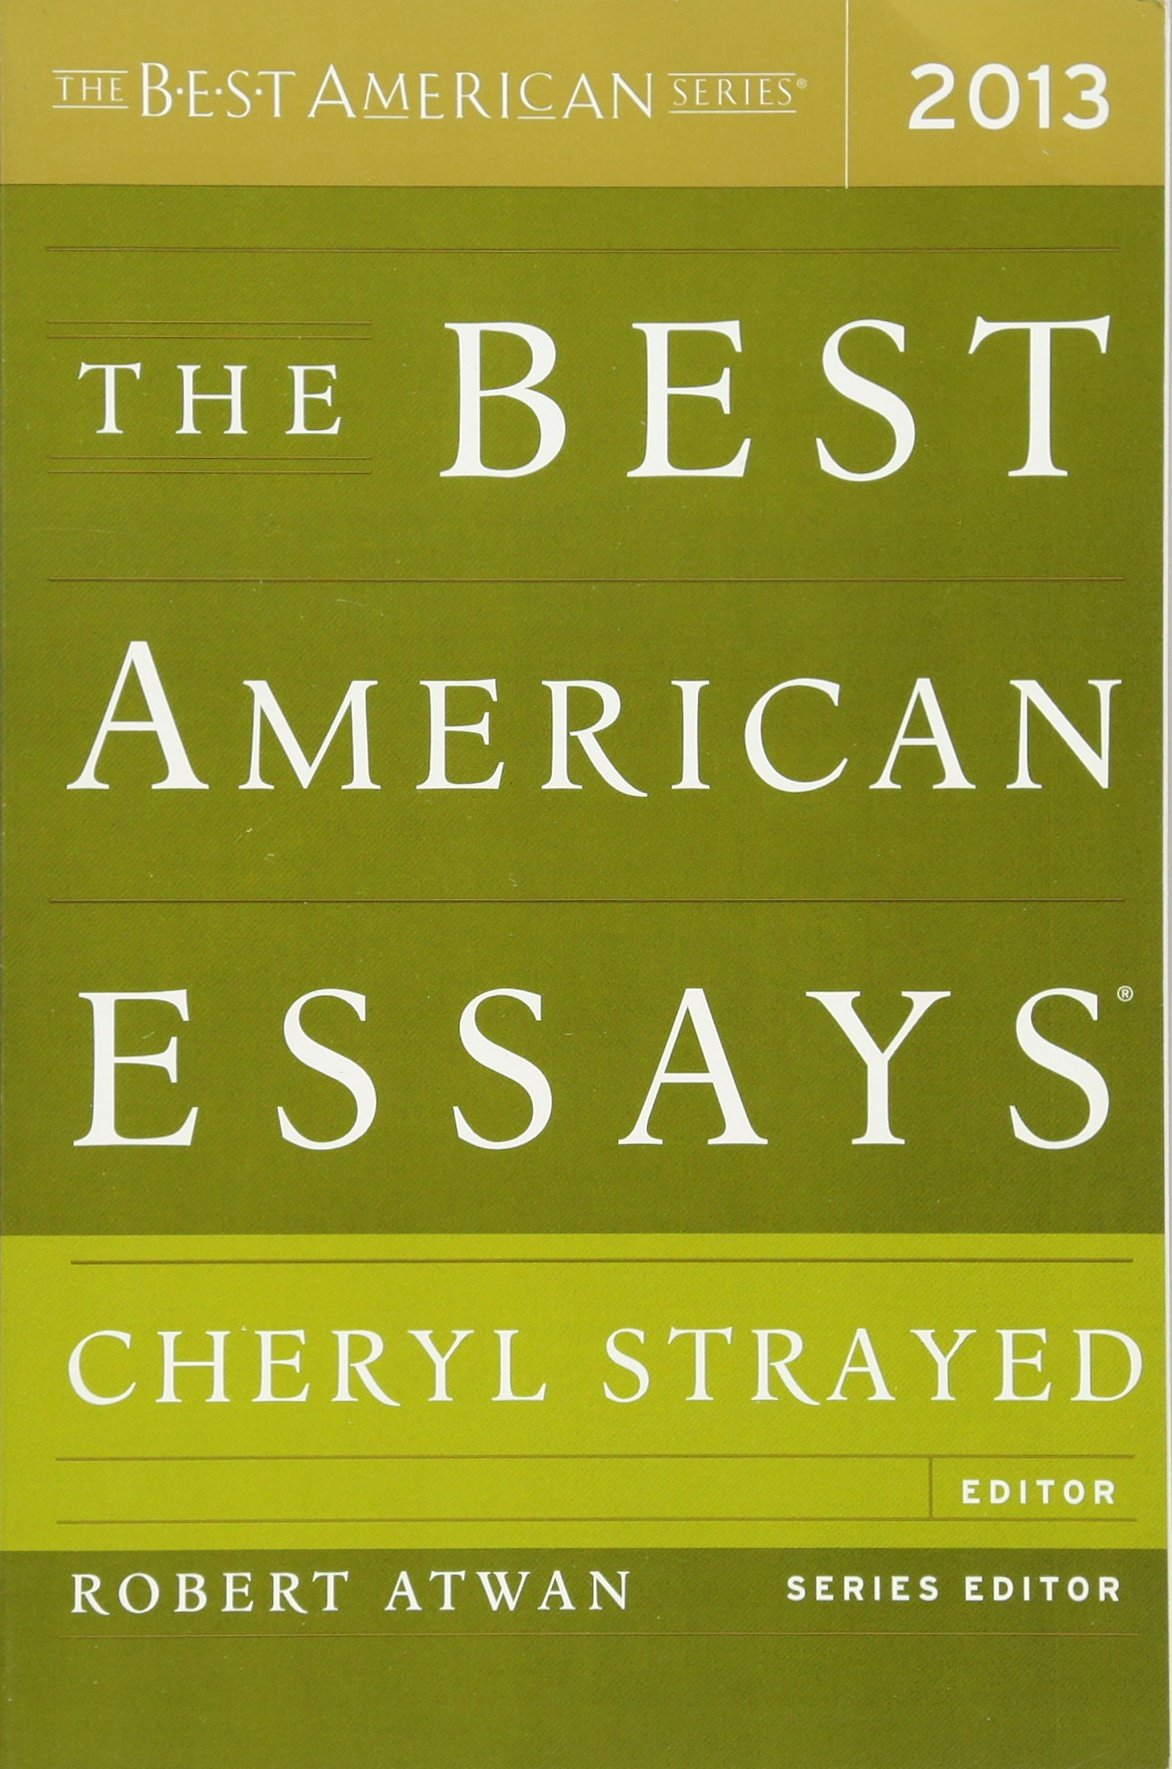 002 Essay Example 81nkls2j9vl Best American Striking Essays 2017 Table Of Contents The Century Pdf Full